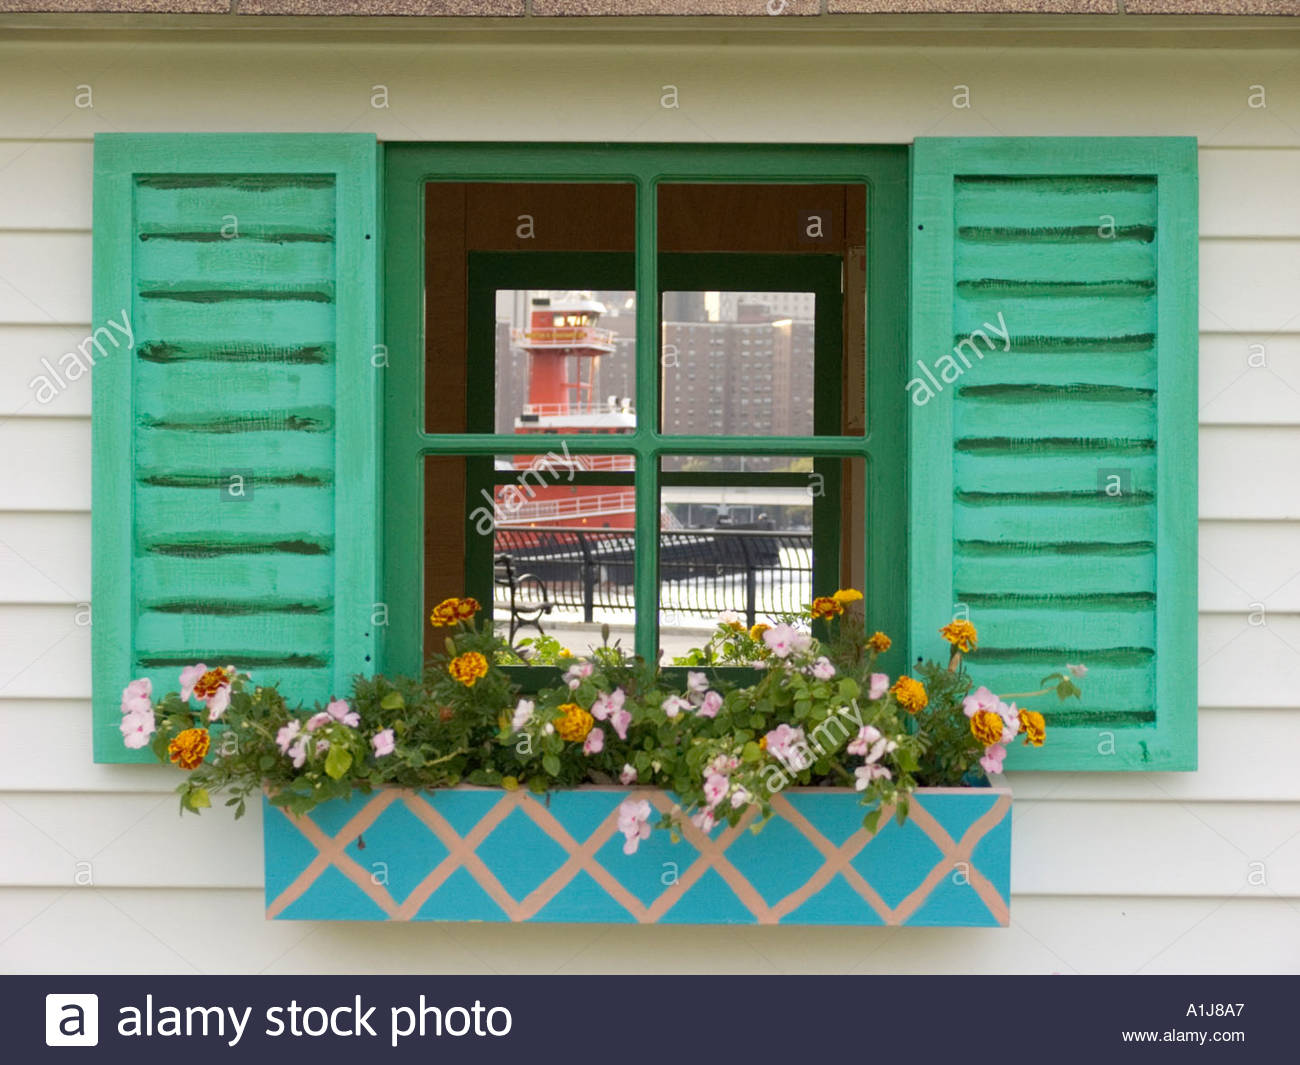 idyllic windows with flower box looking out to our world tugboat on the East River NYC Stock Photo